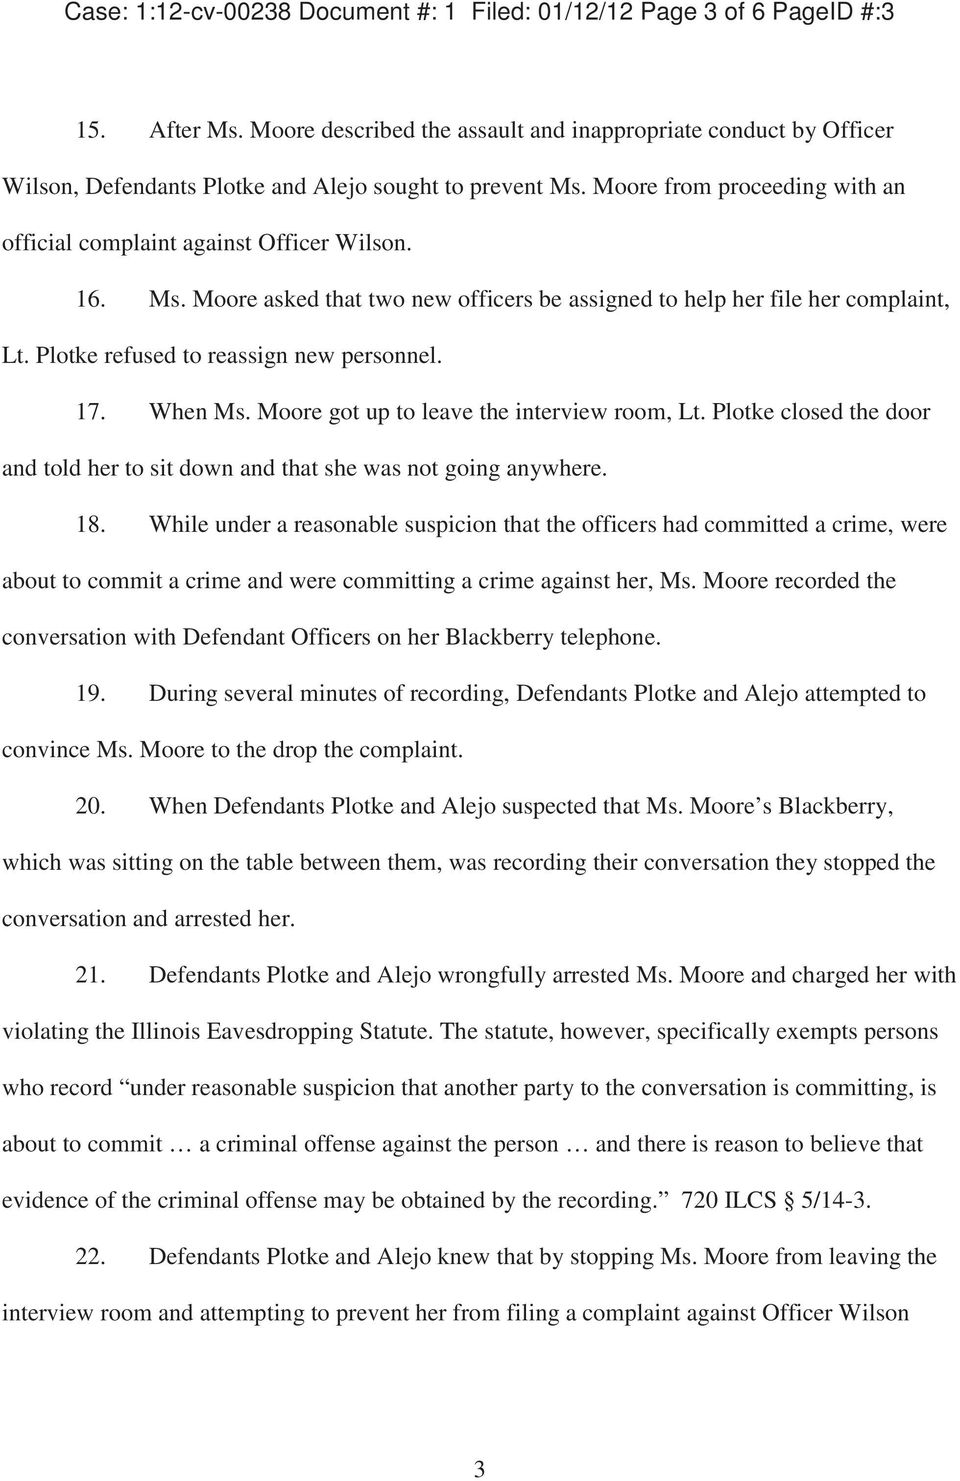 Ms. Moore asked that two new officers be assigned to help her file her complaint, Lt. Plotke refused to reassign new personnel. 17. When Ms. Moore got up to leave the interview room, Lt.